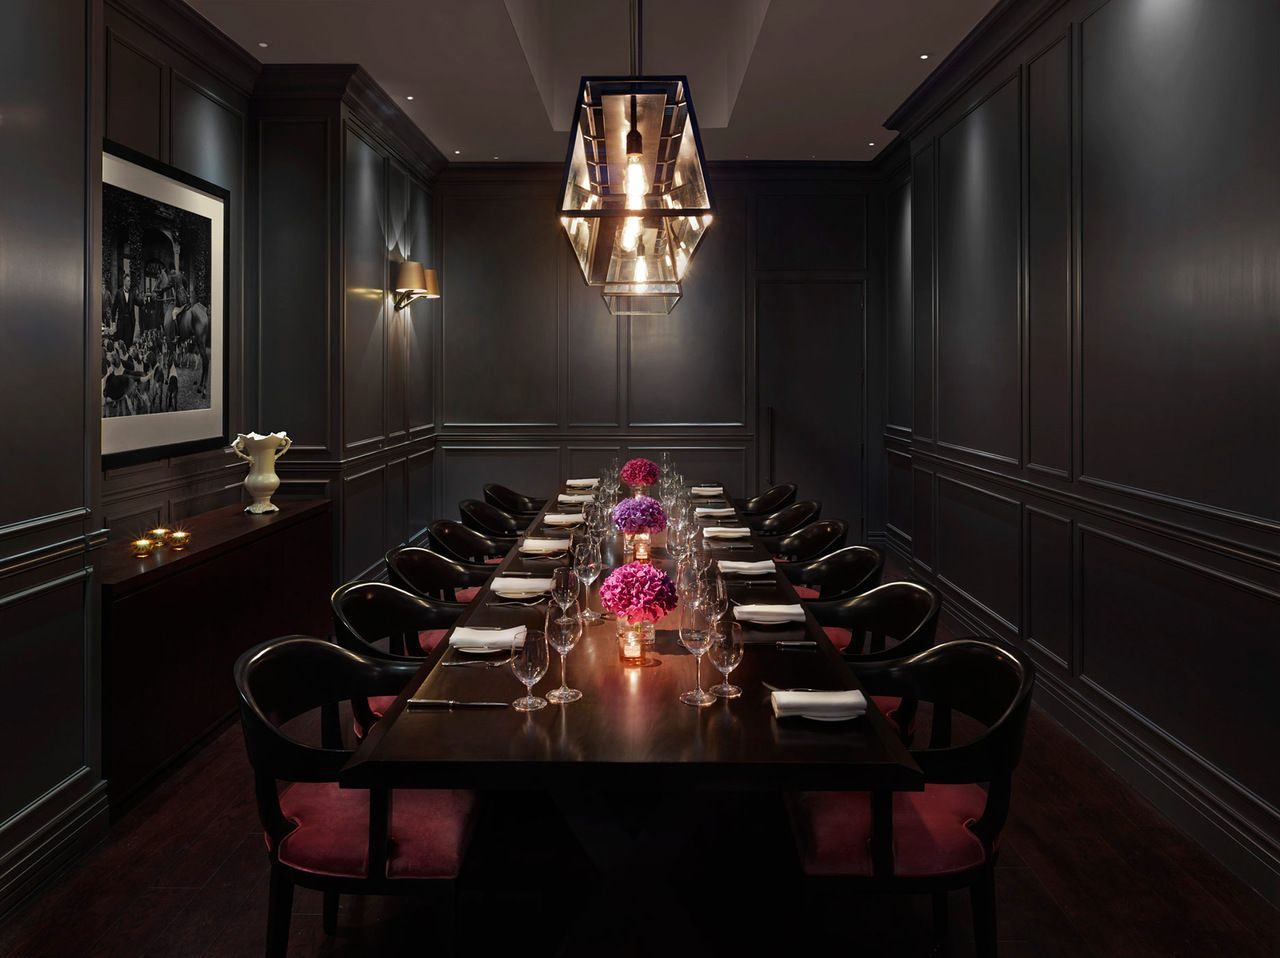 Chicago Restaurants With Private Dining Rooms Fair Private Dining Room  Hotel  Pinterest  Photo Galleries Design Ideas